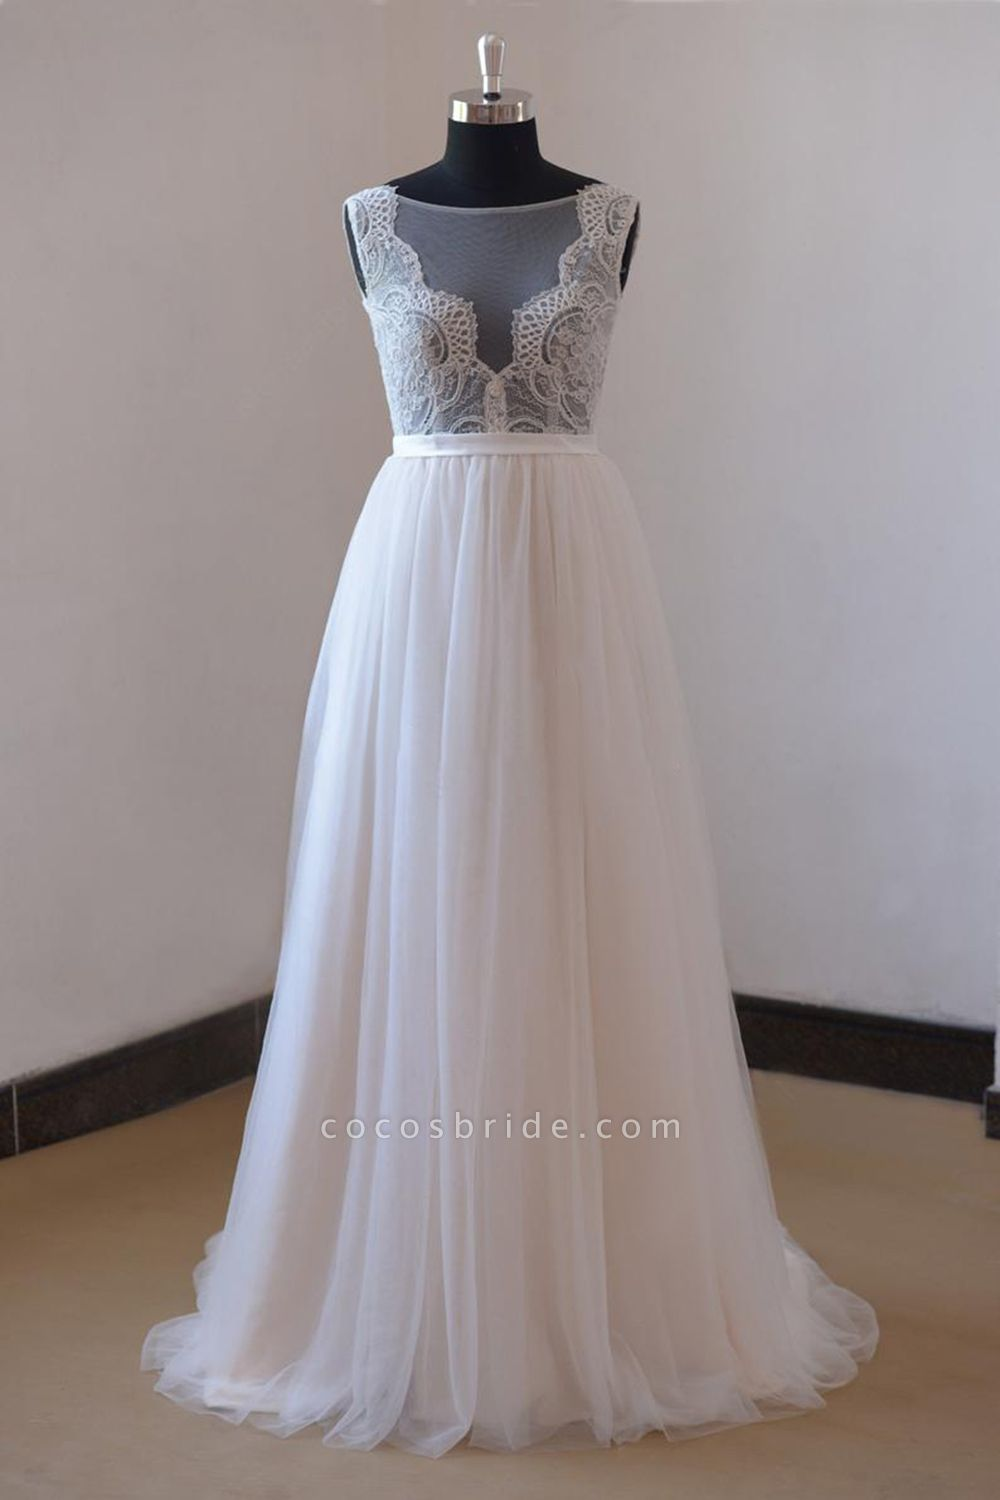 Chic Lace Floor Length Tulle A-line Wedding Dress